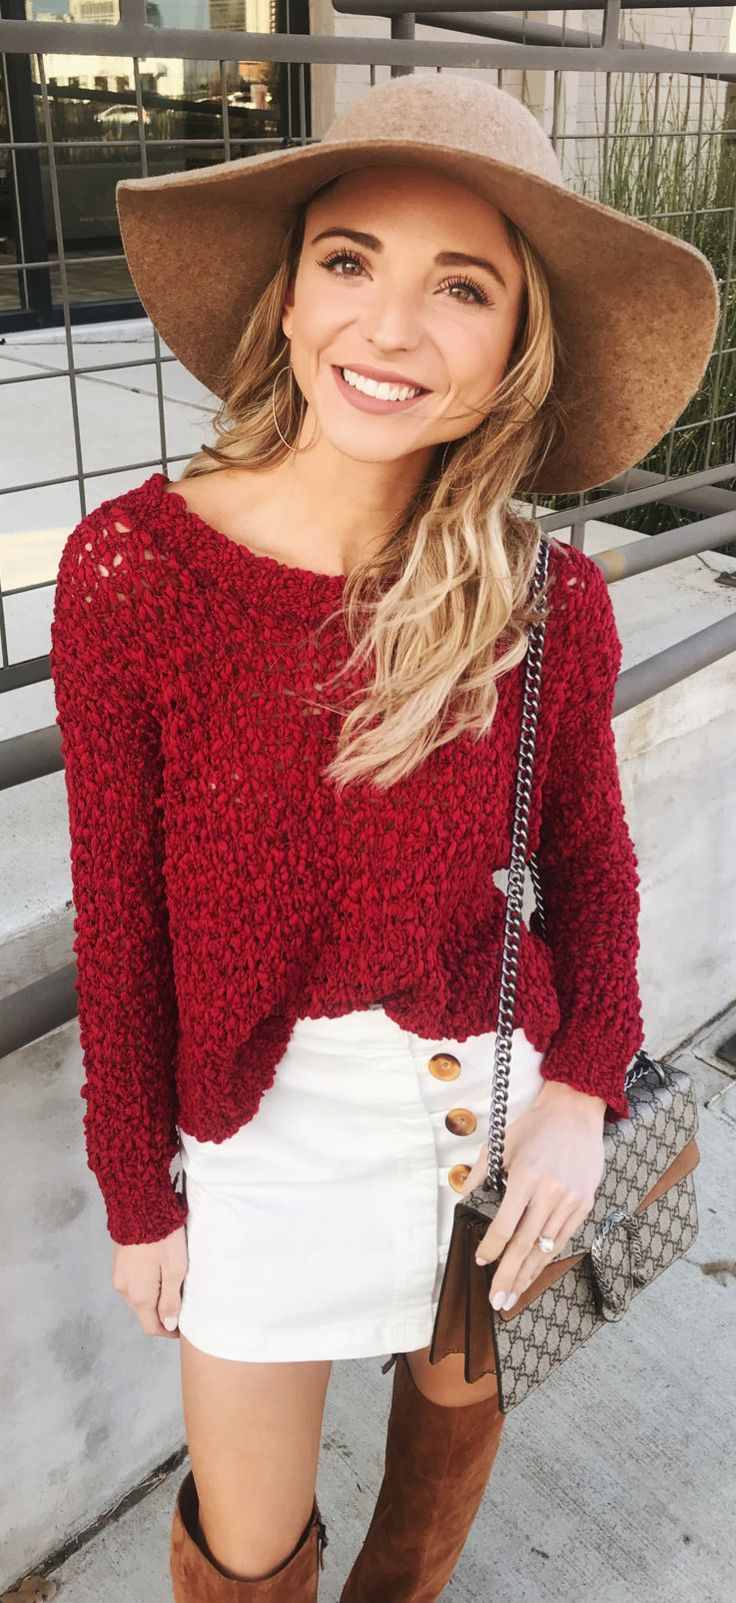 #winter #outfits red knit boat-neck long-sleeved shirt and white denim skirt with gray leather sling bag